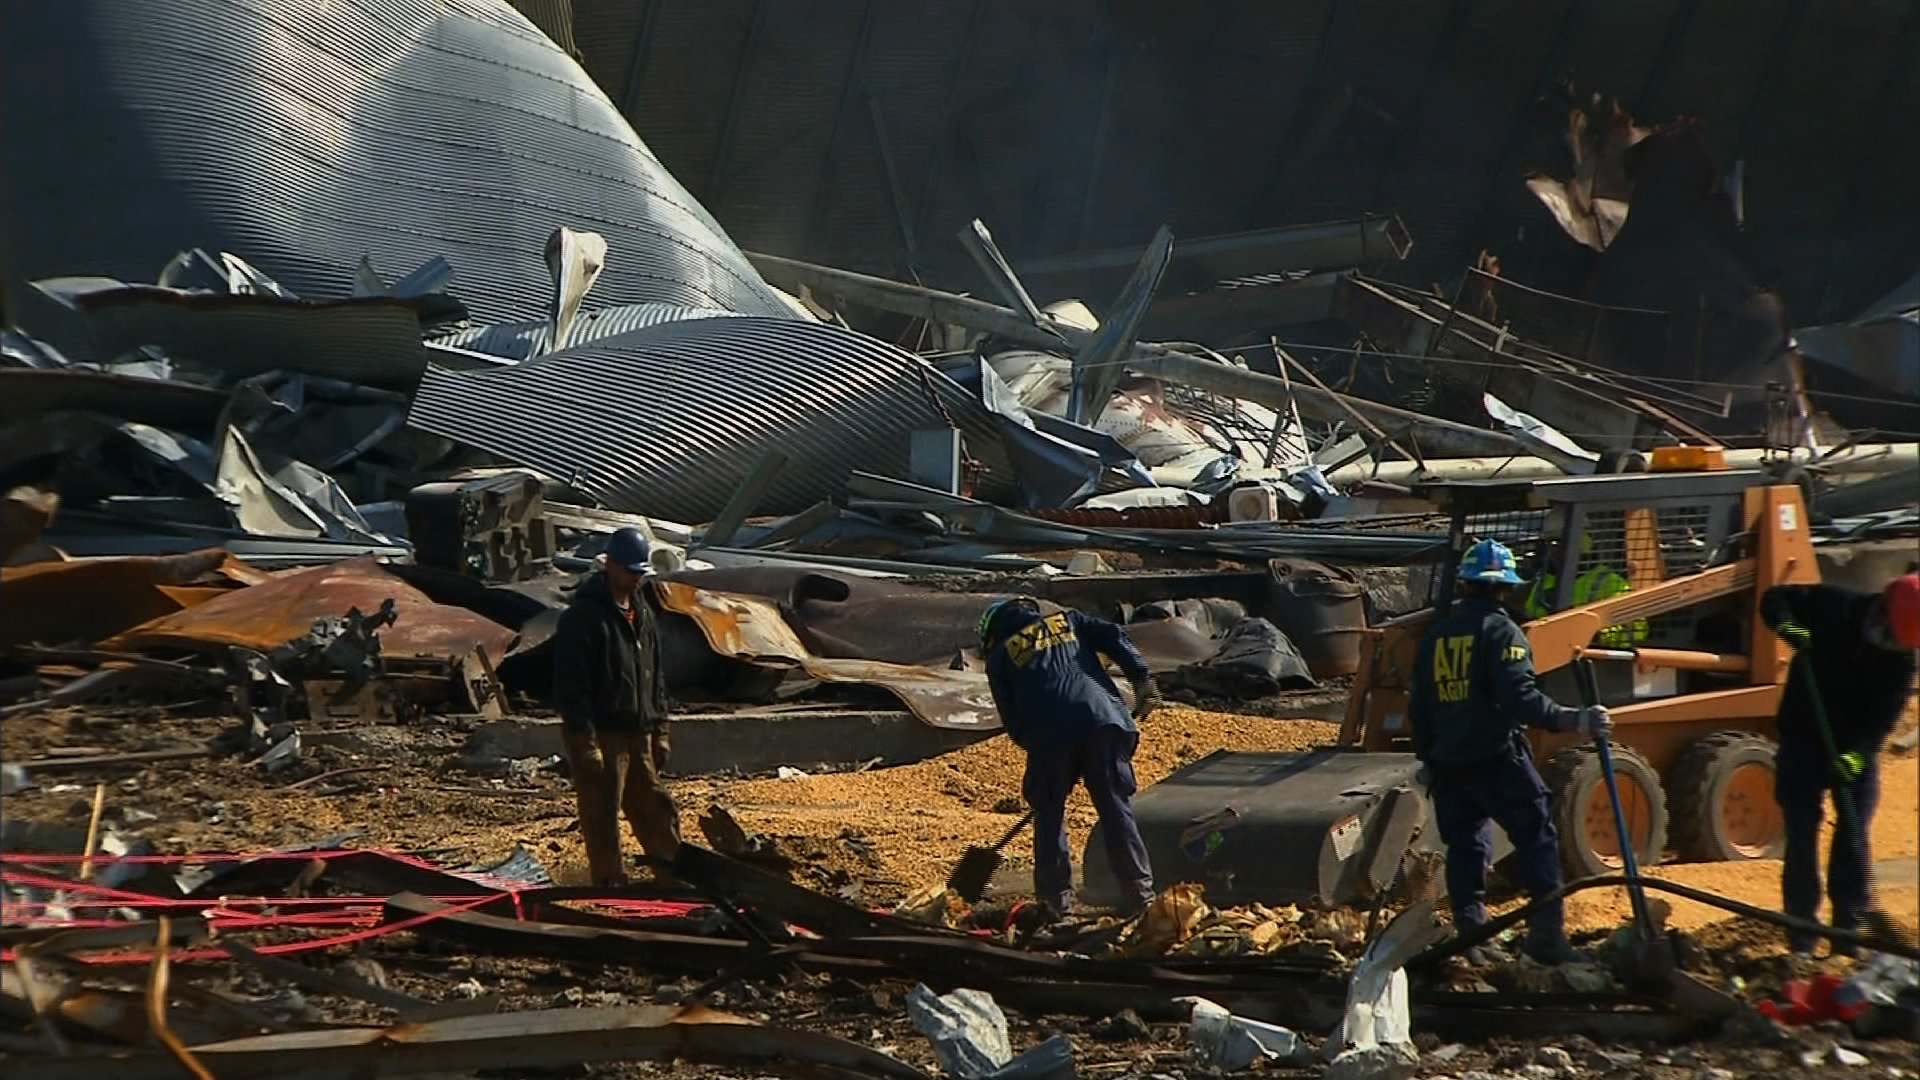 Cleanup is underway in Texas after fertilizer explosion